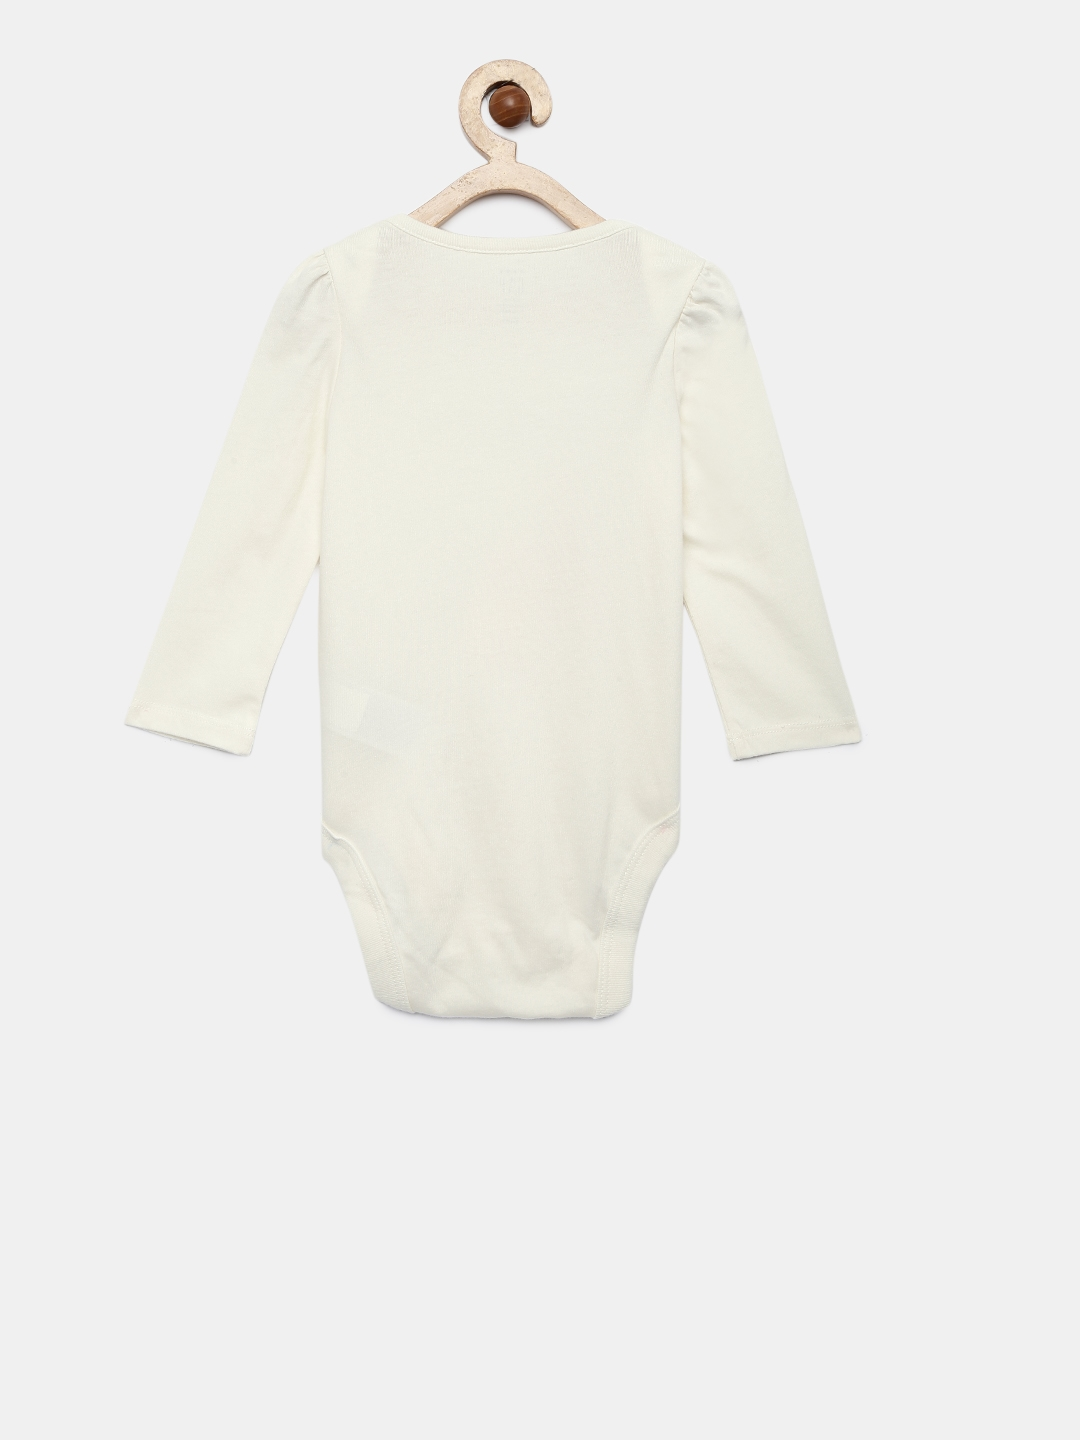 ea3398f01 Buy GAP Girls  White Graphic Long Sleeve Rompers - Rompers for Girls ...